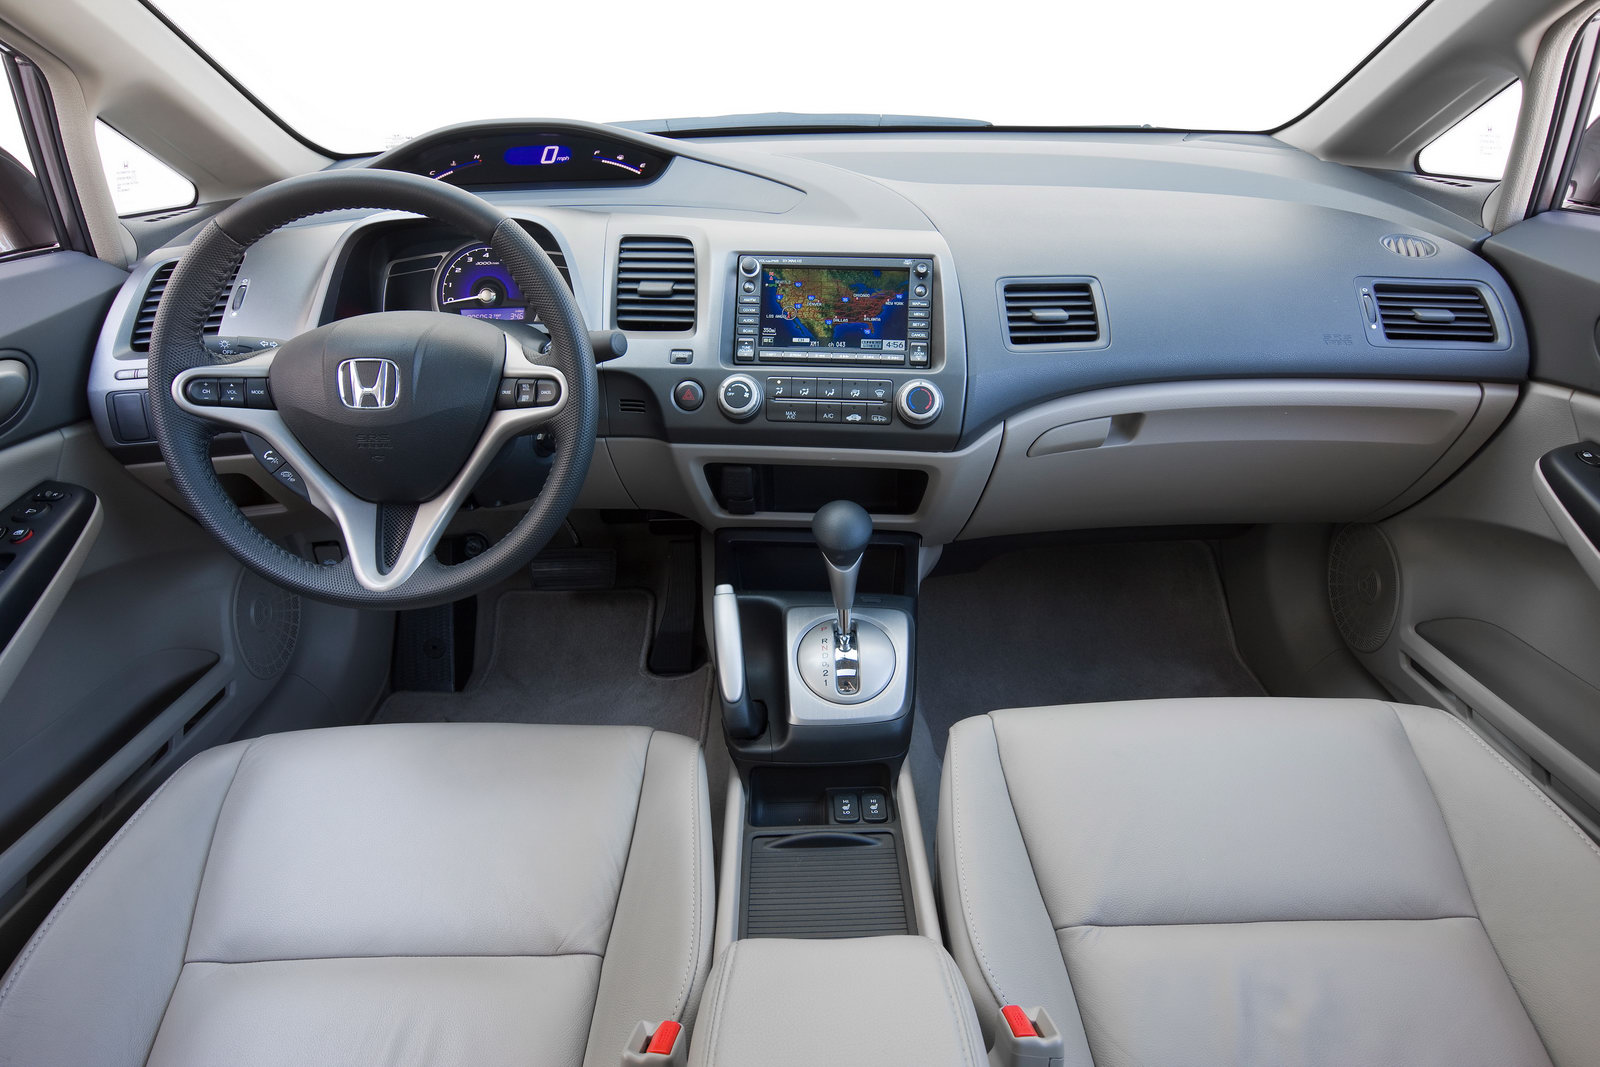 Honda Civic #12